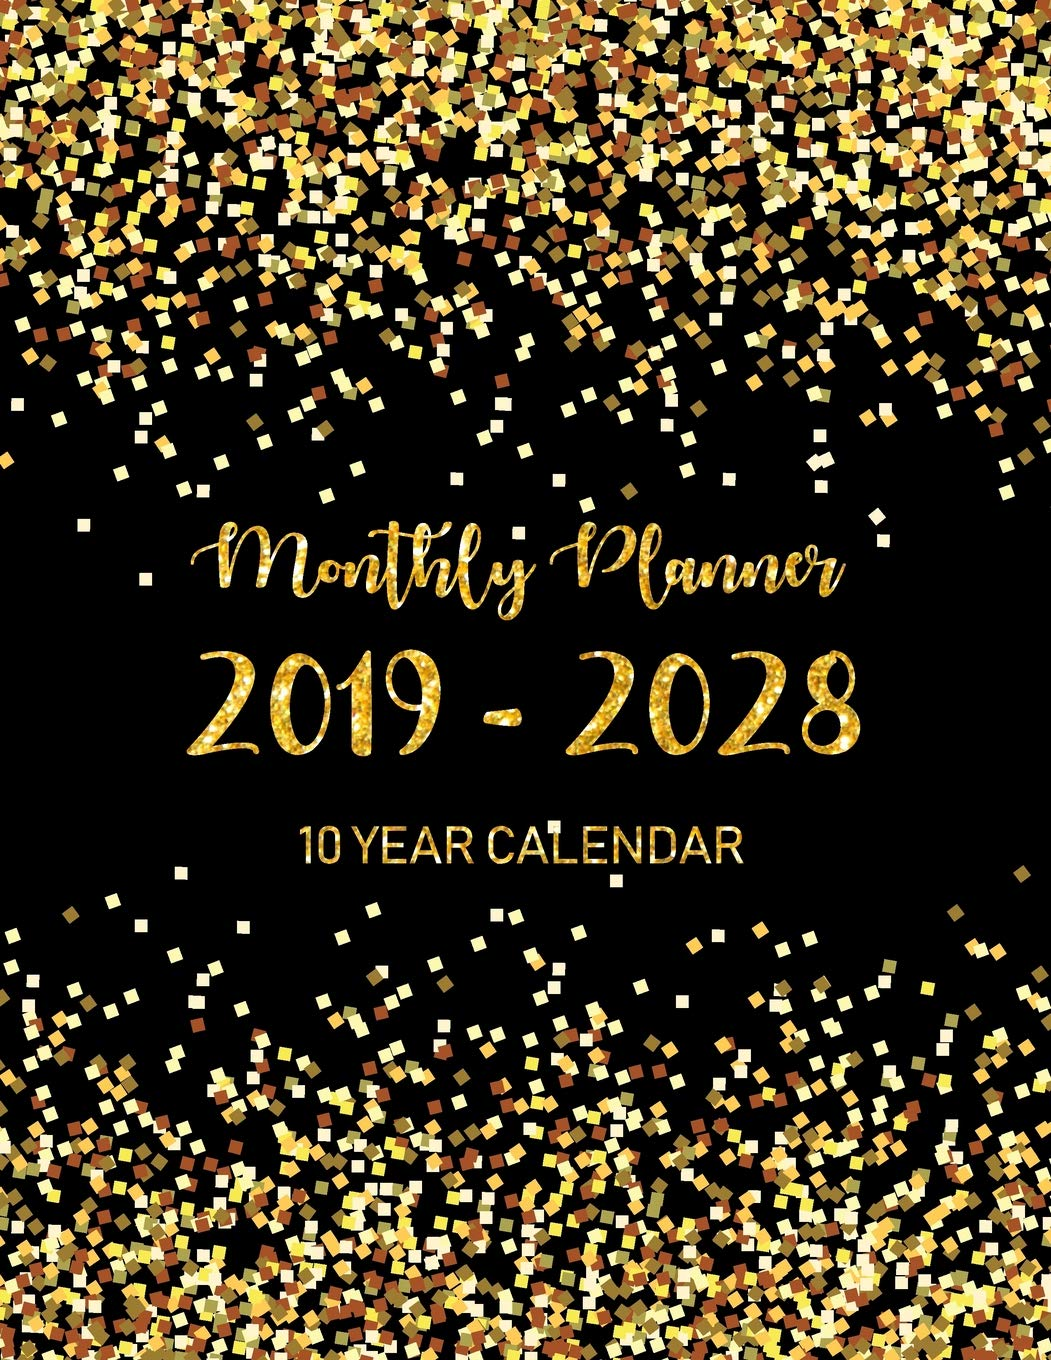 Amazon.com: 2019 - 2028 Monthly Planner 10 Year calendar ...